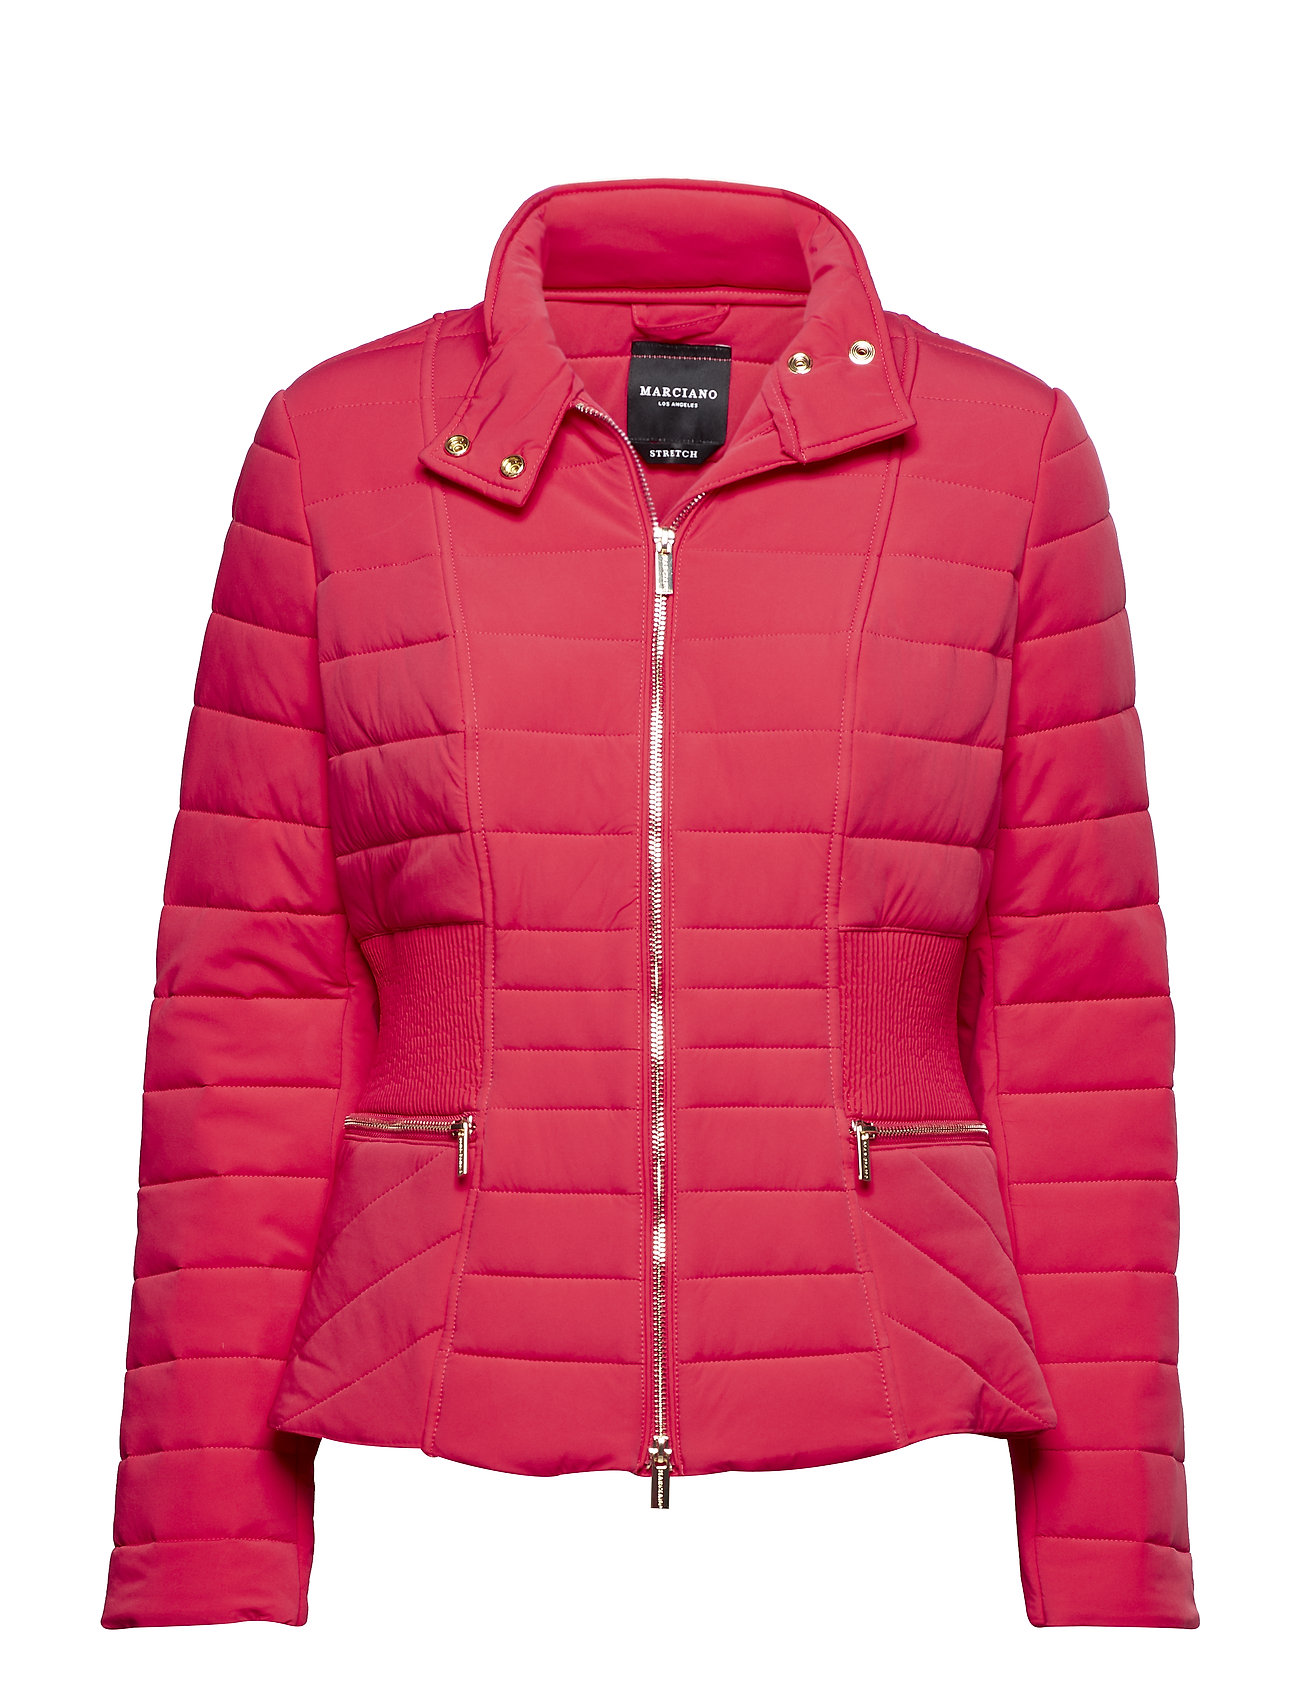 Marciano by GUESS SAGE PUFFER JACKET - VIVID ROSE